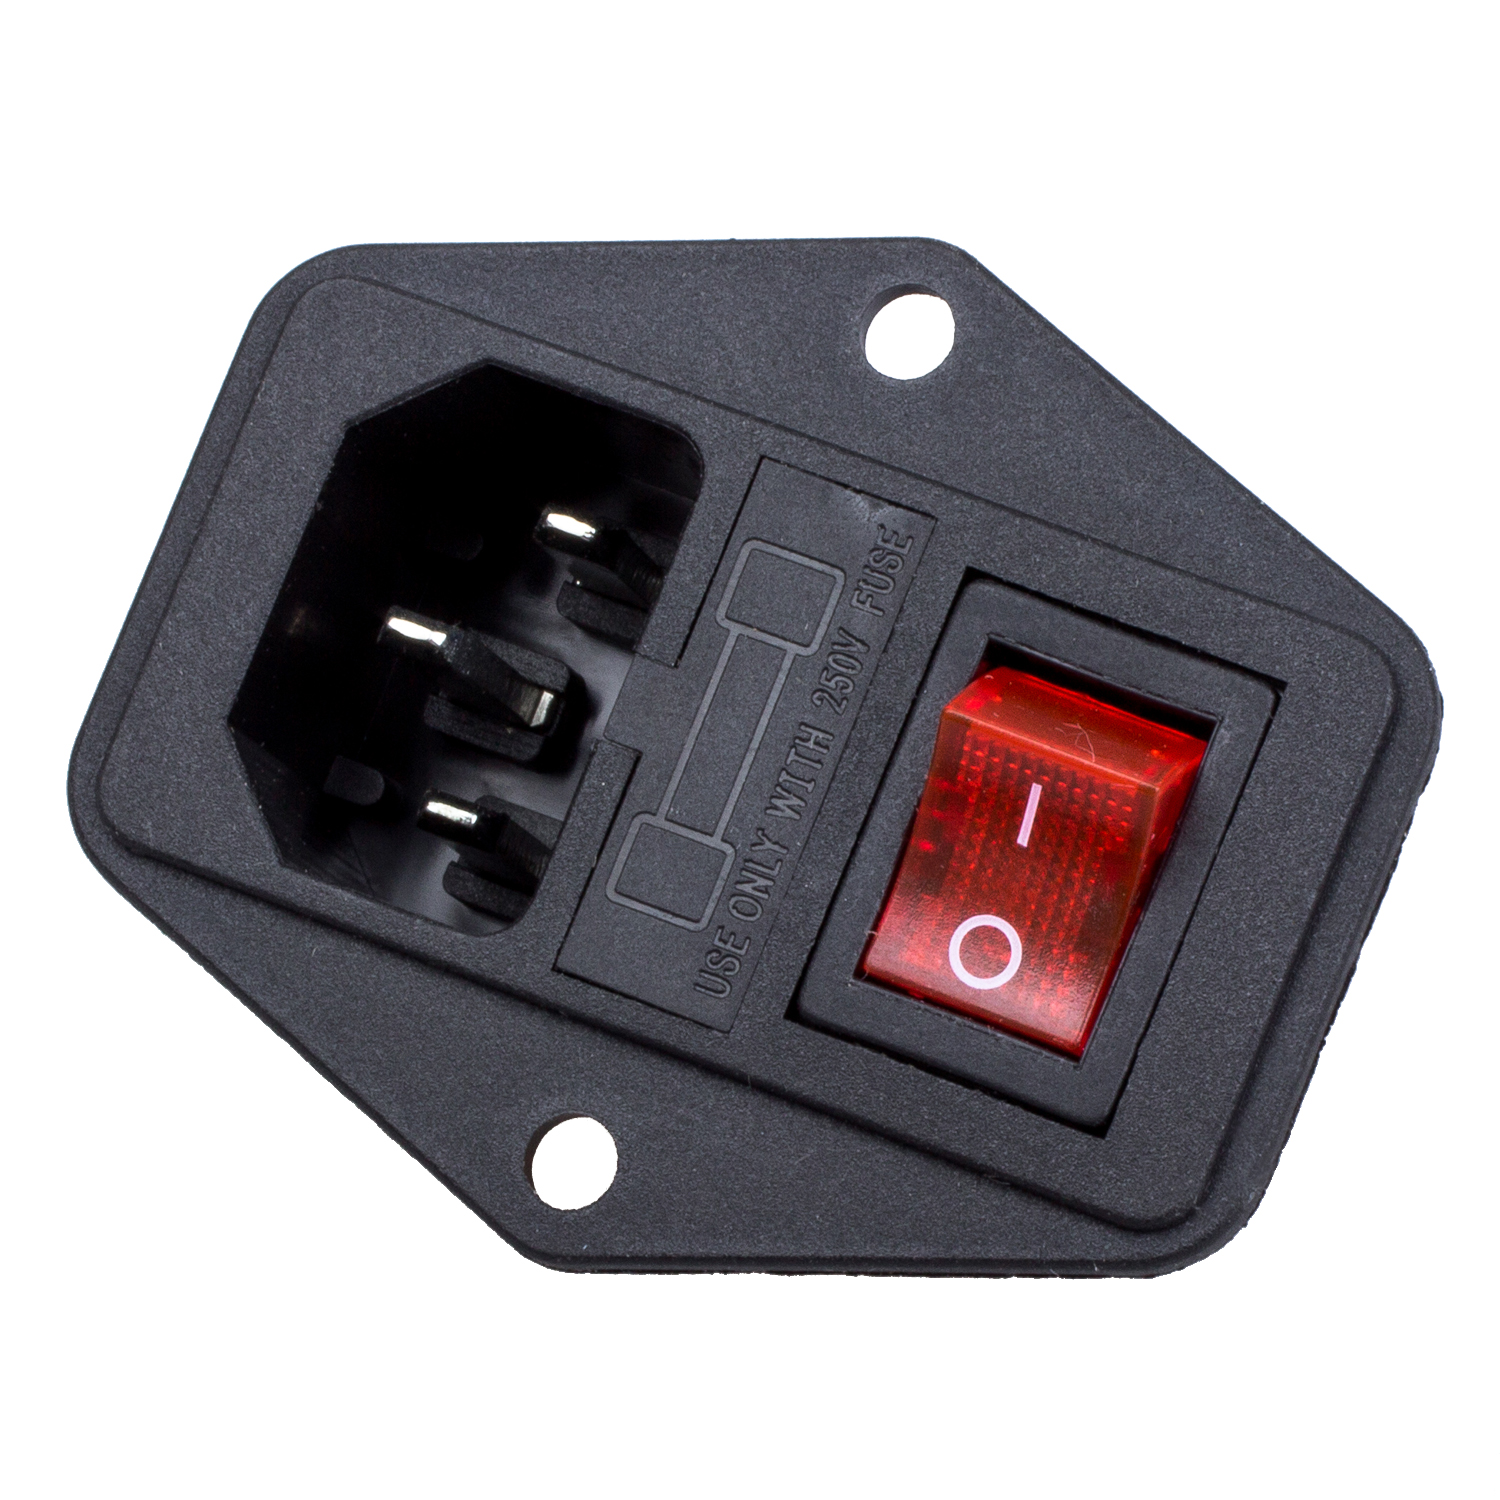 Hot sale 3 Pin IEC320 C14 Inlet Module Plug Fuse Switch Male Power Socket 10A 250V